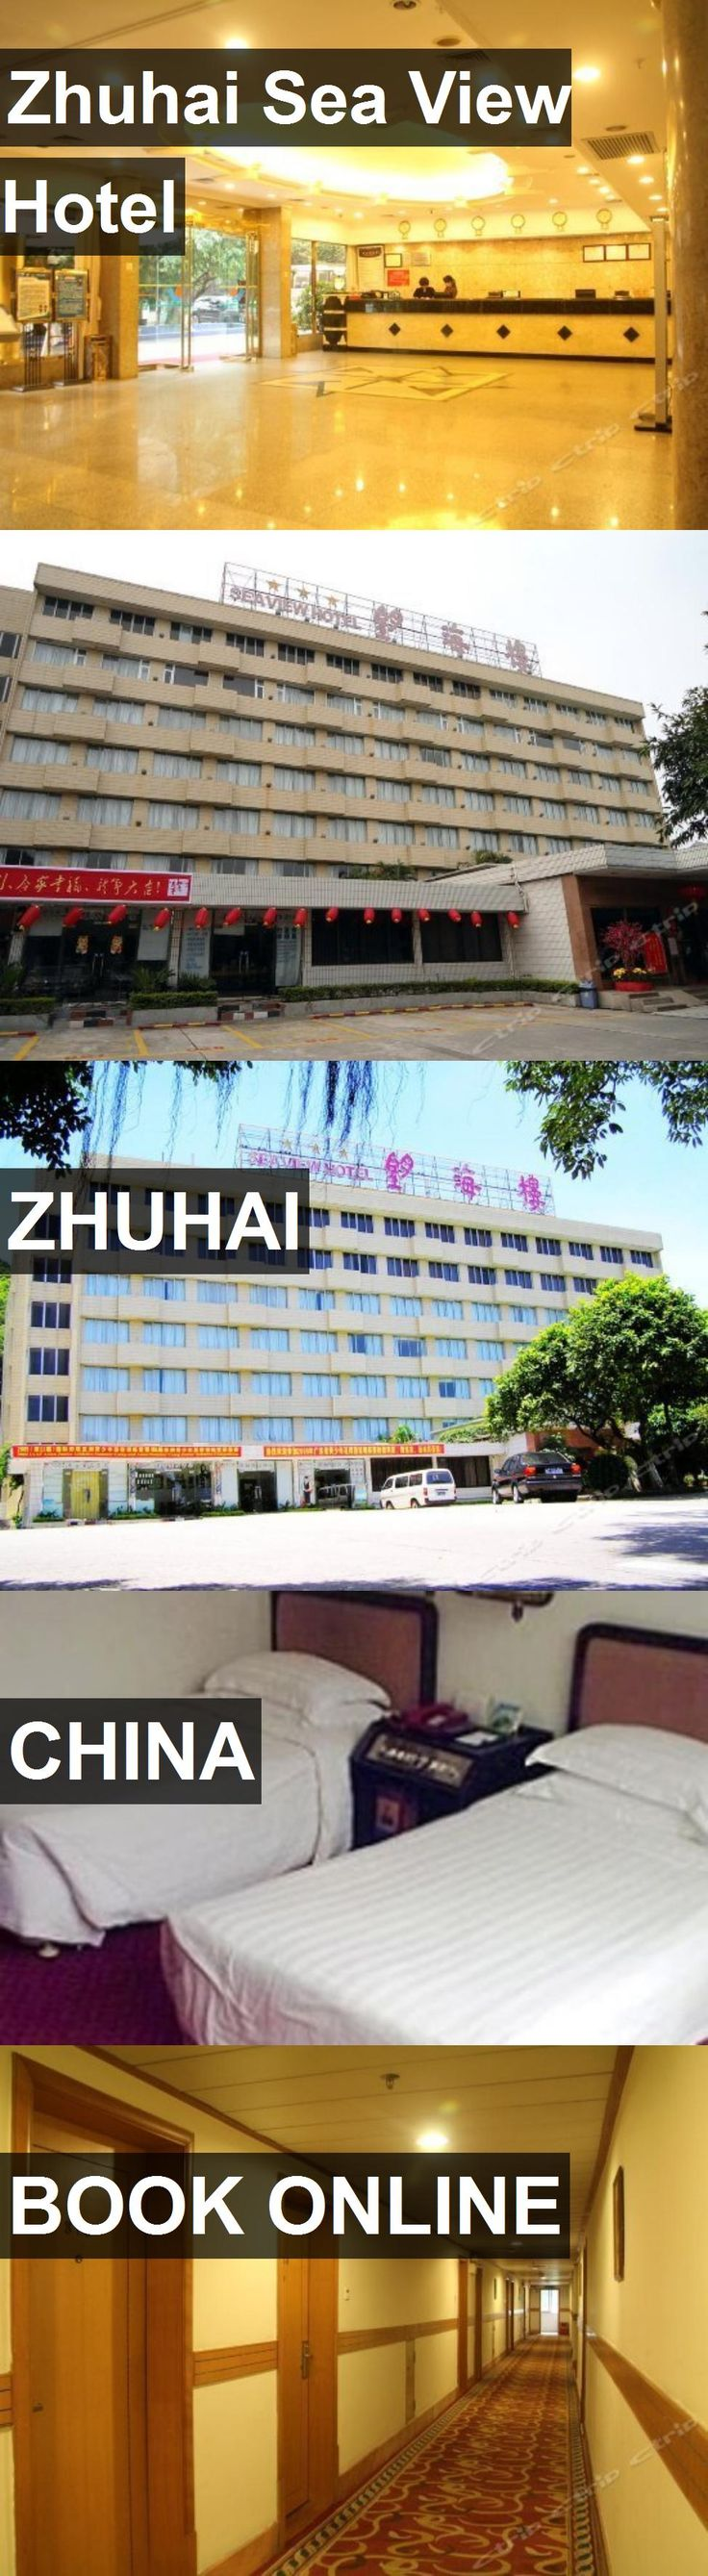 Hotel Zhuhai Sea View Hotel in Zhuhai, China. For more information, photos, reviews and best prices please follow the link. #China #Zhuhai #hotel #travel #vacation